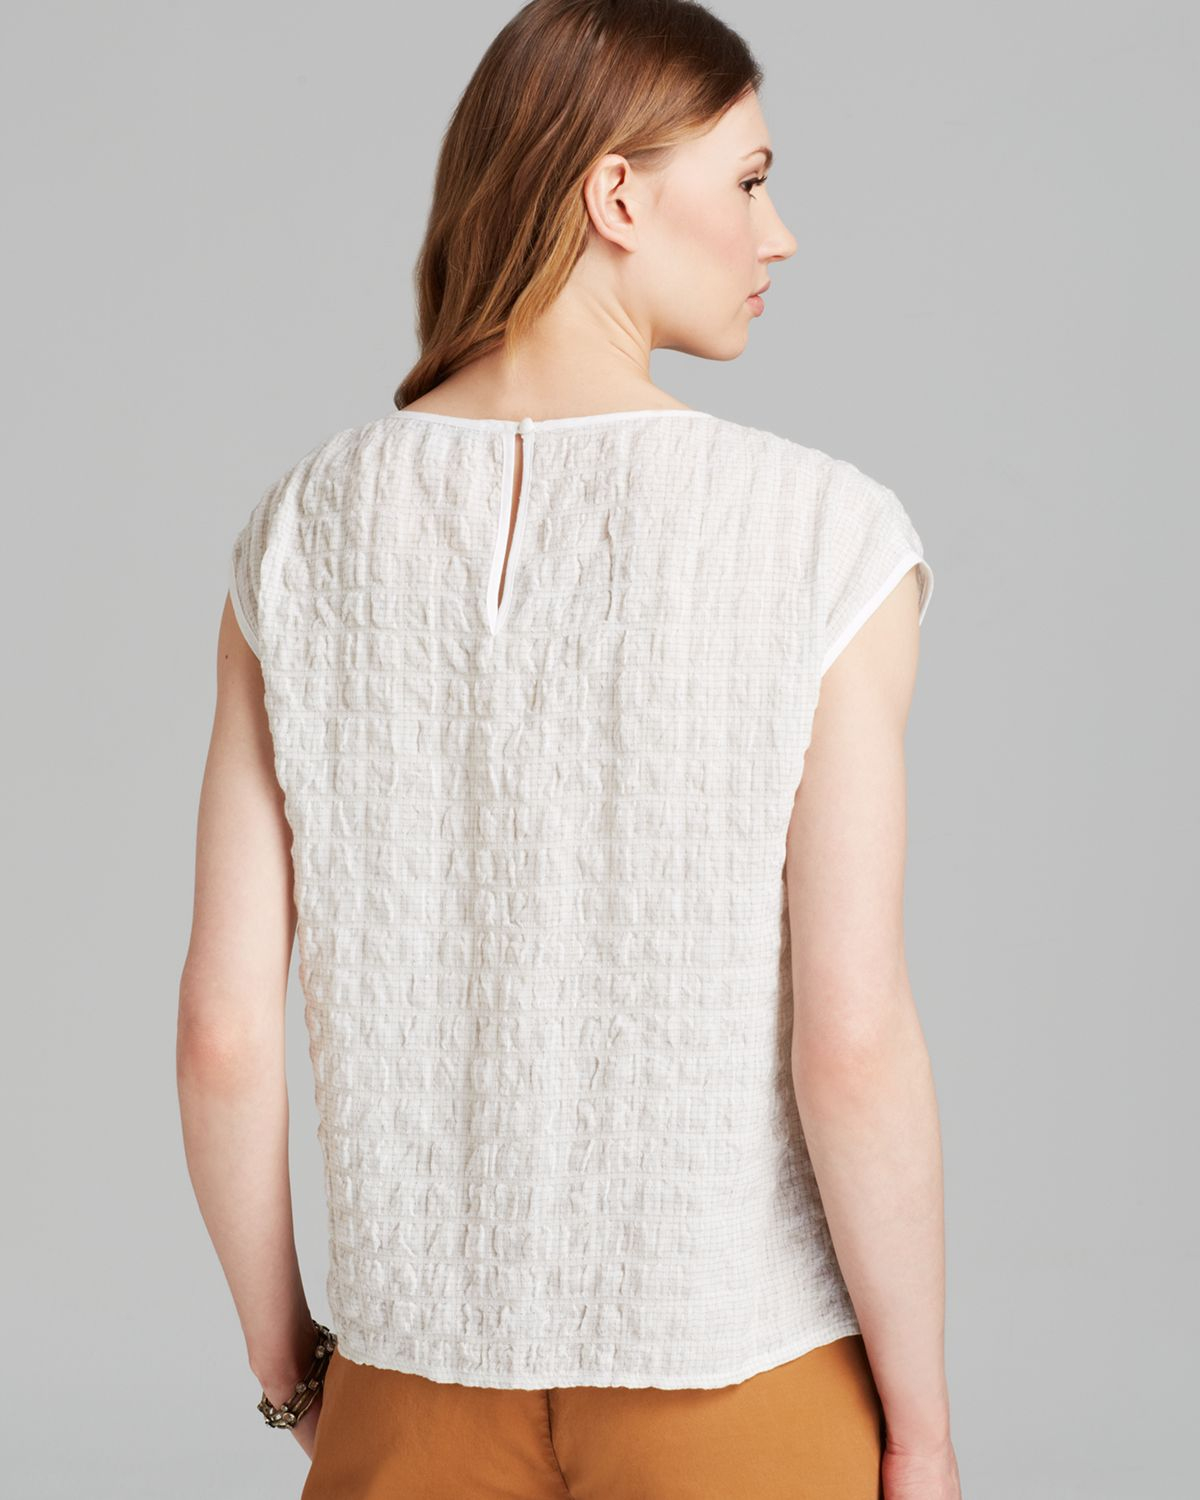 Lyst - Eileen Fisher Boat Neck Cap Sleeve Top in White